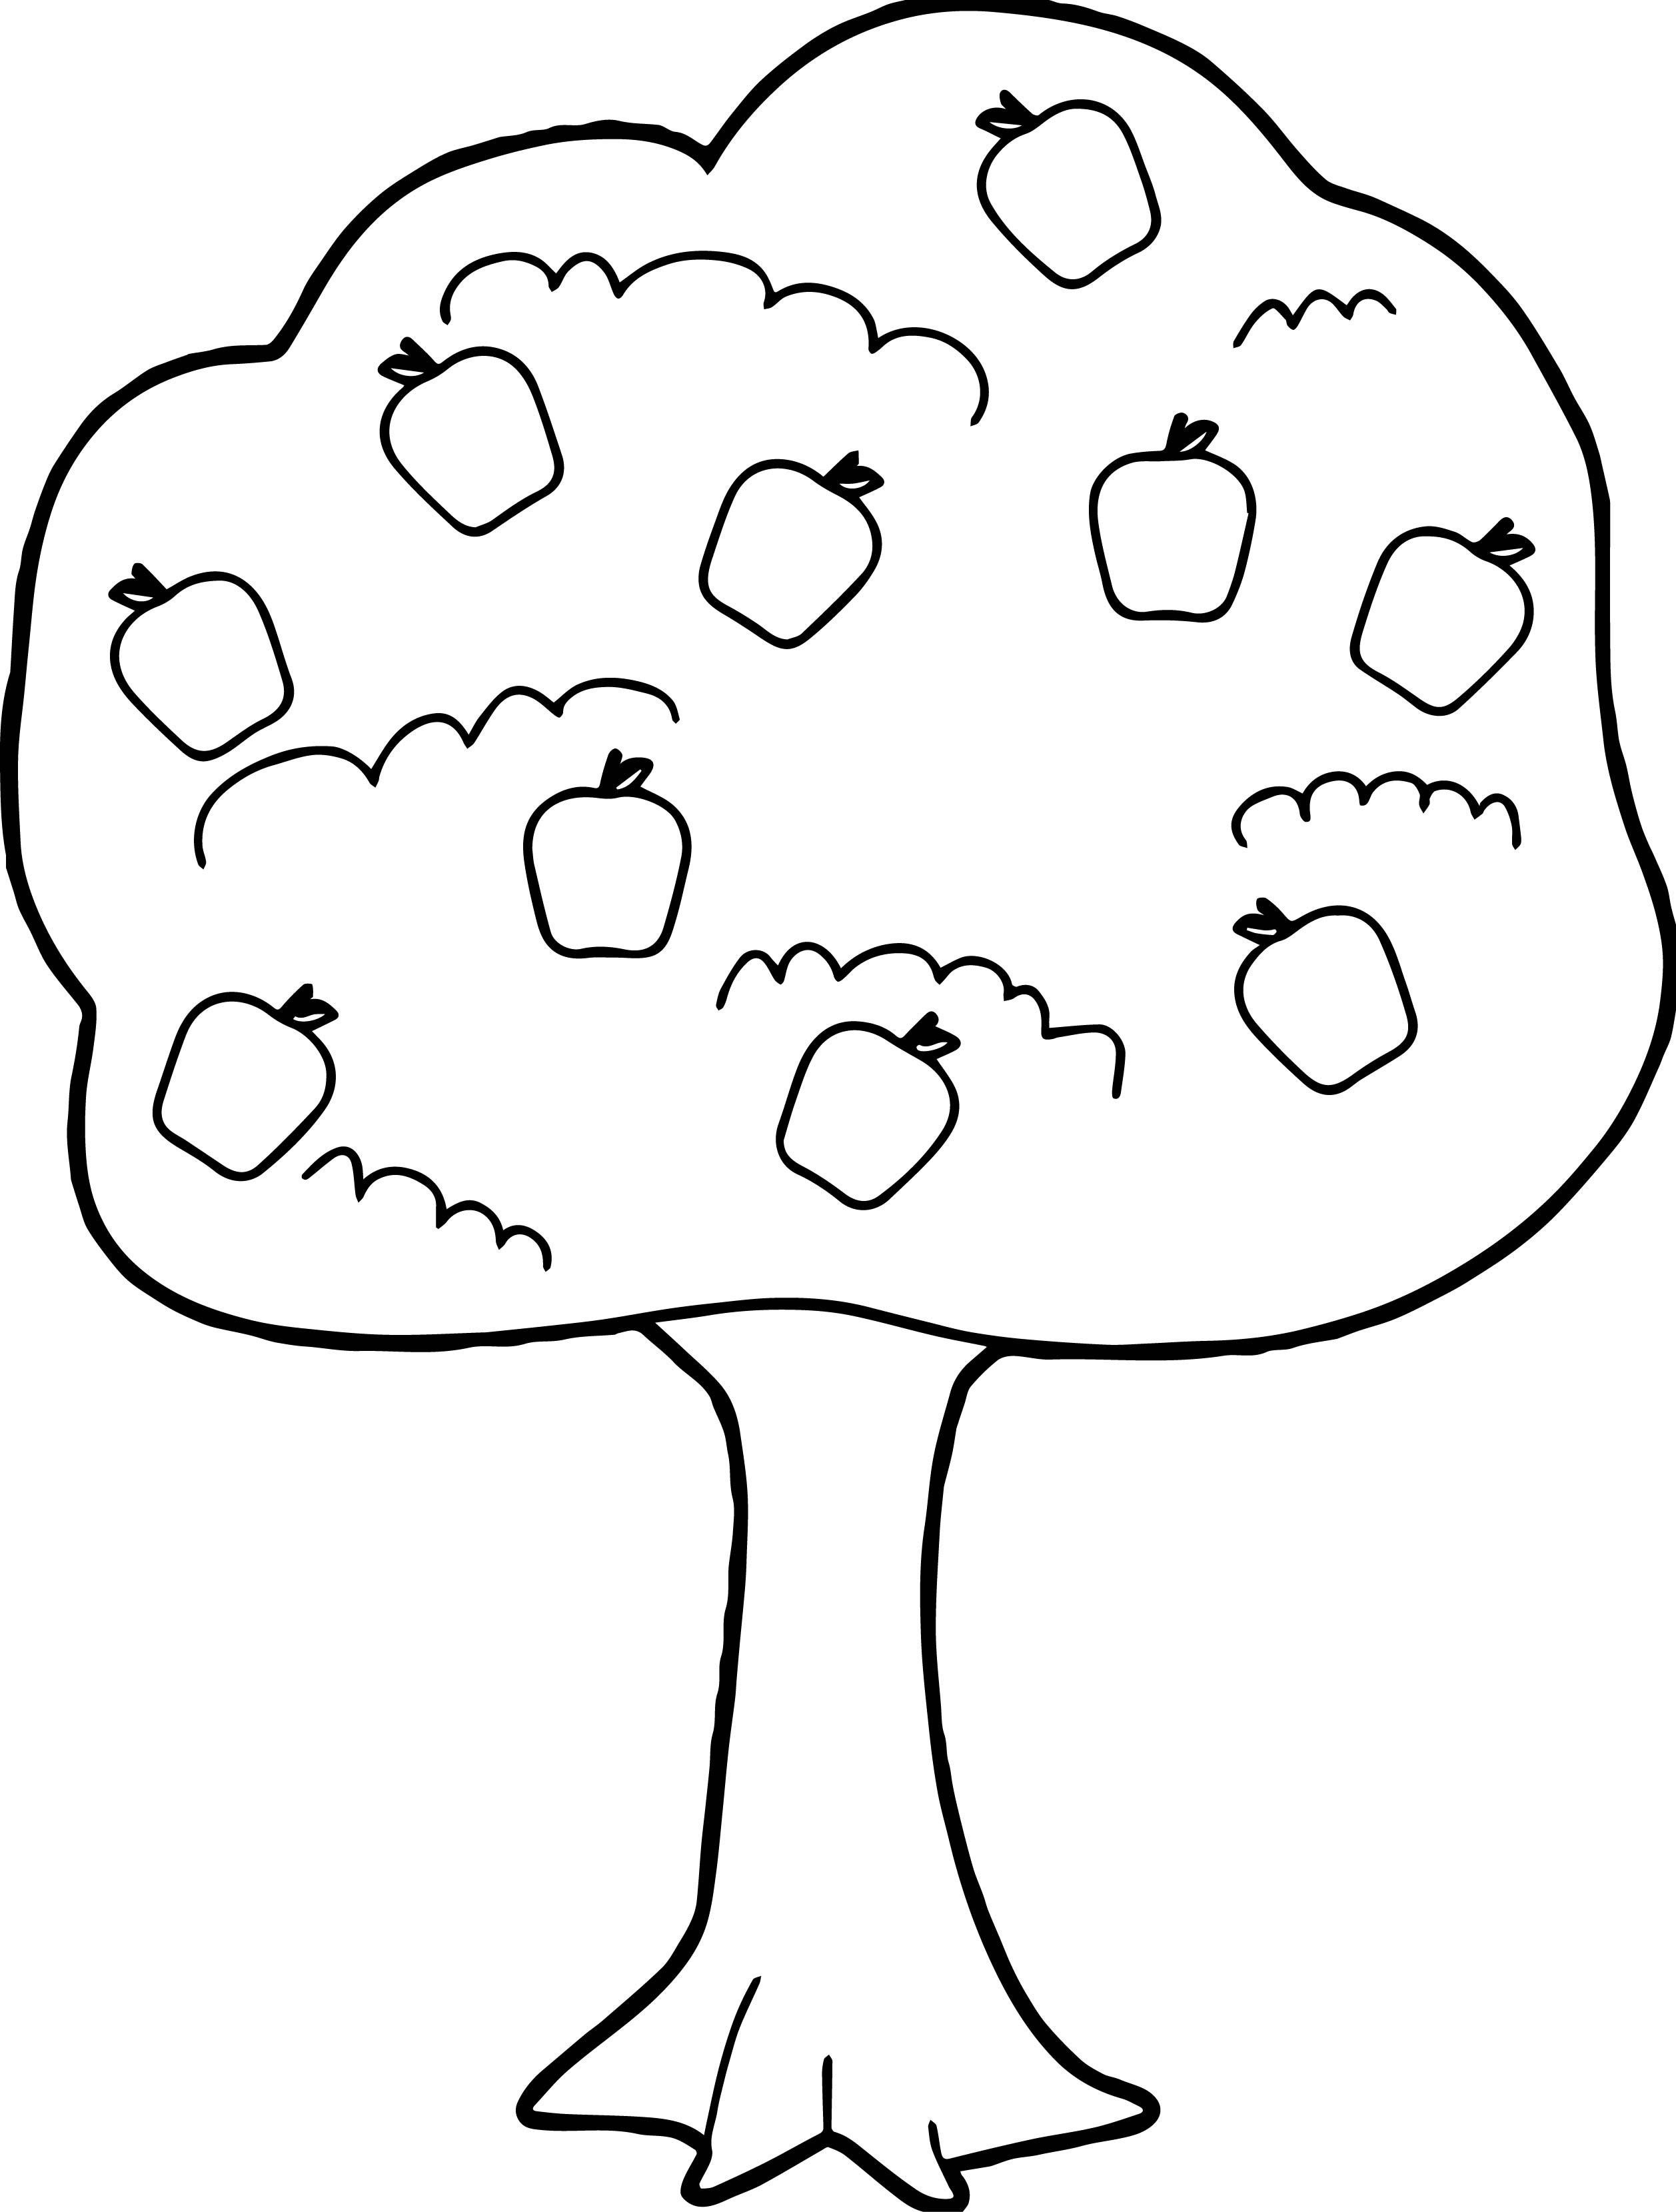 apple printable coloring pages Collection-Coloring for Preschoolers New Preschool Coloring Pages Apple Tree Inspirational Printable Coloring Coloring 19-r